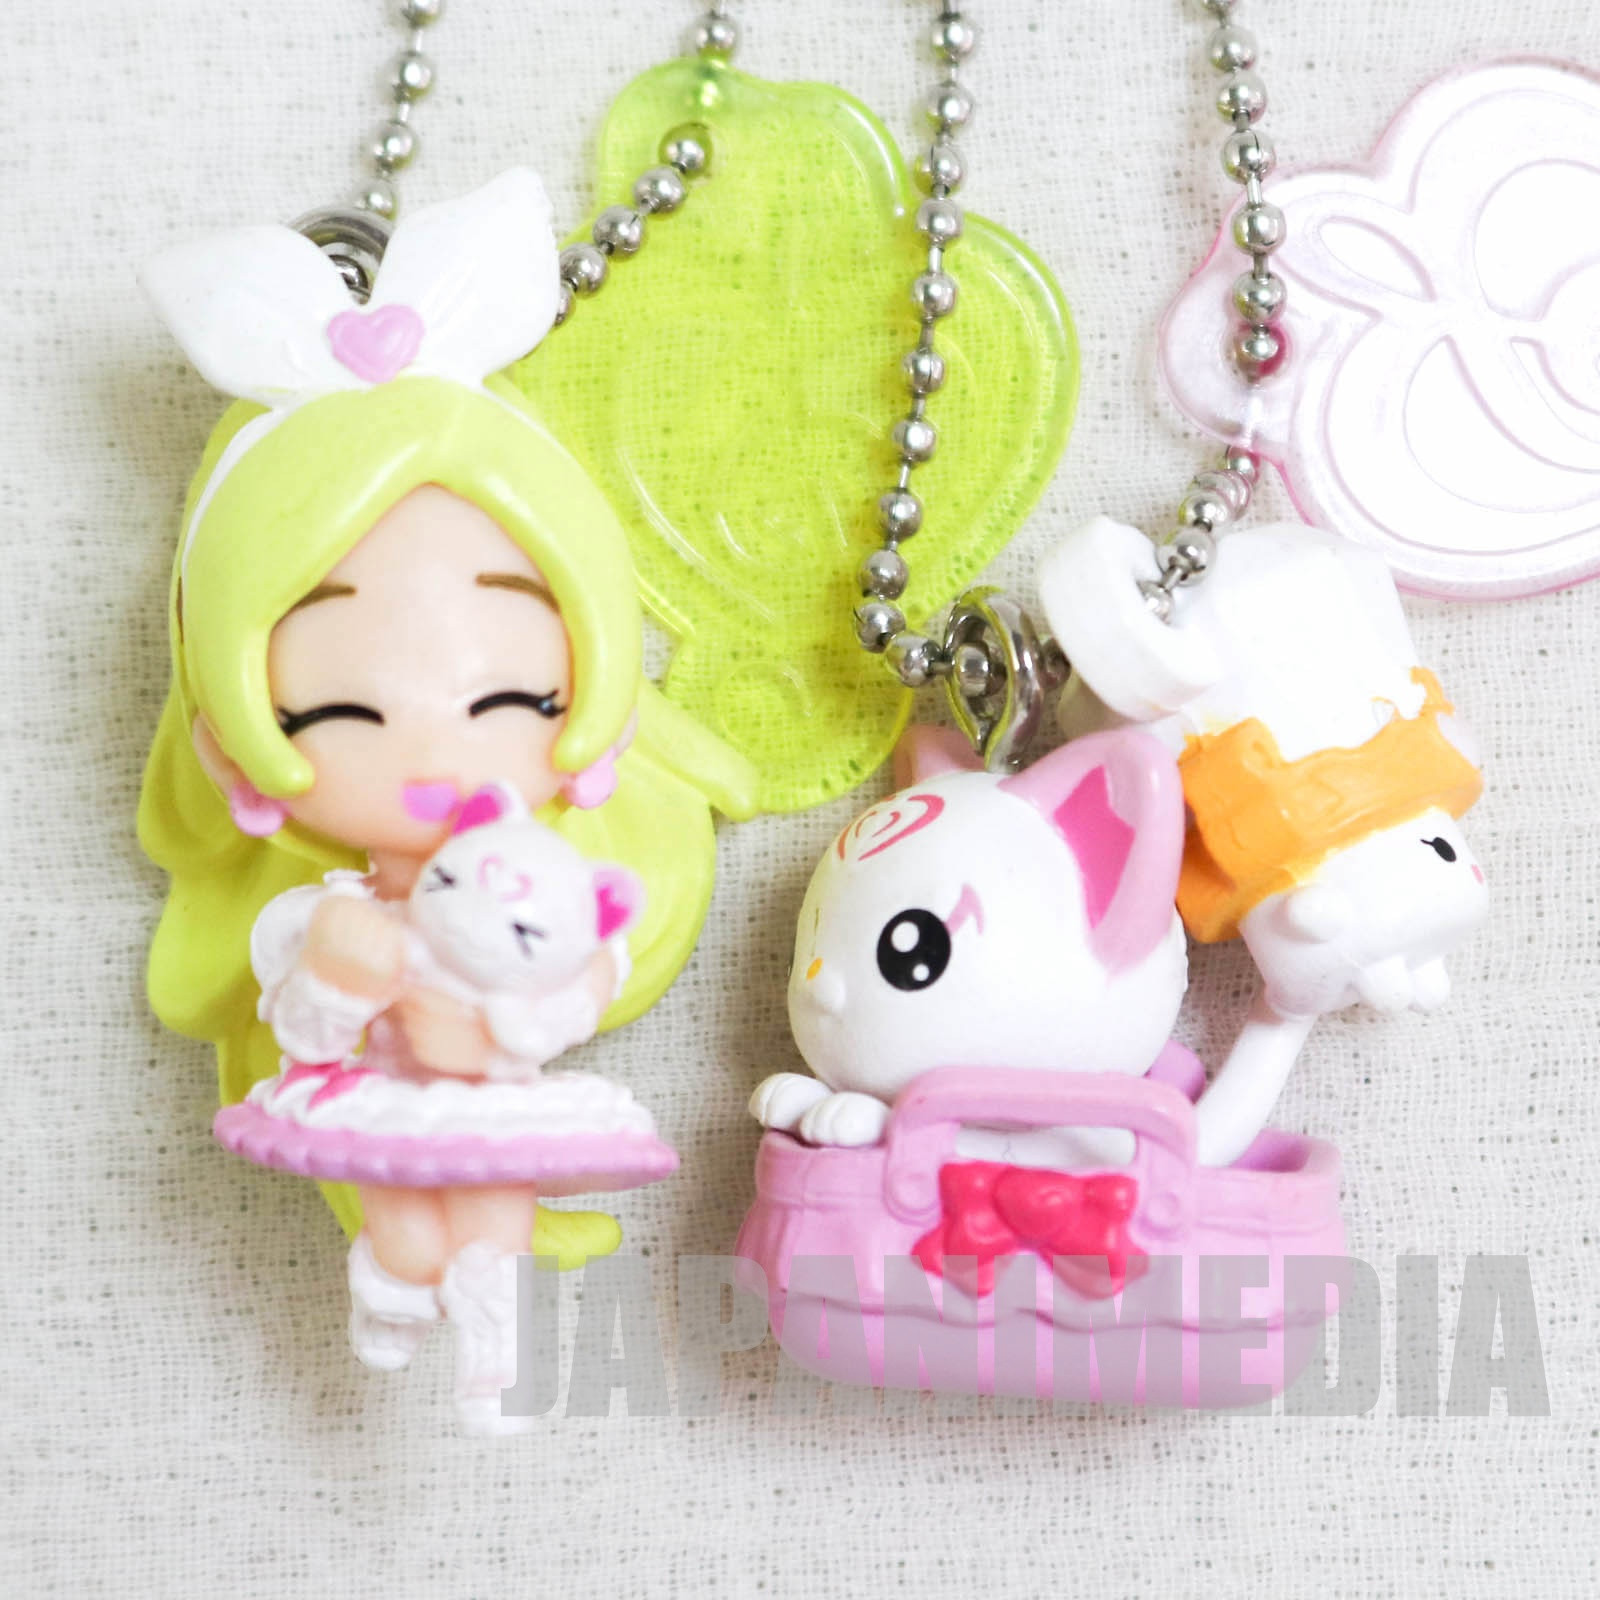 Suite PreCure Cure Rhythm / Hummy & Rery PreCure Goddess Swing Mascot Figure Ball Keychain 2pc set JAPAN ANIME